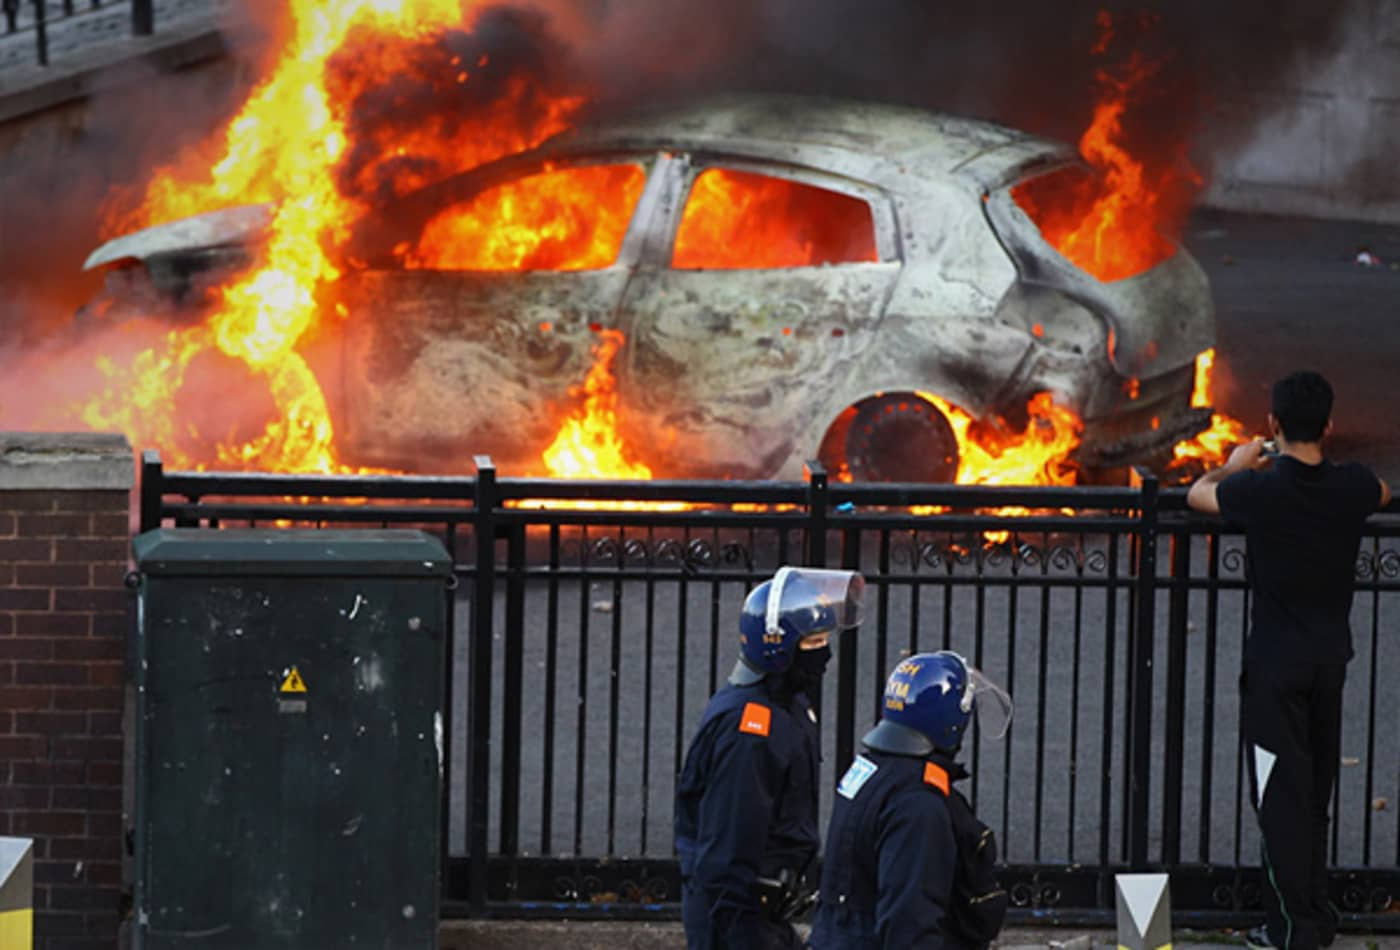 CNBC_scenes_from_london_riots_birmingham_burning_car.jpg